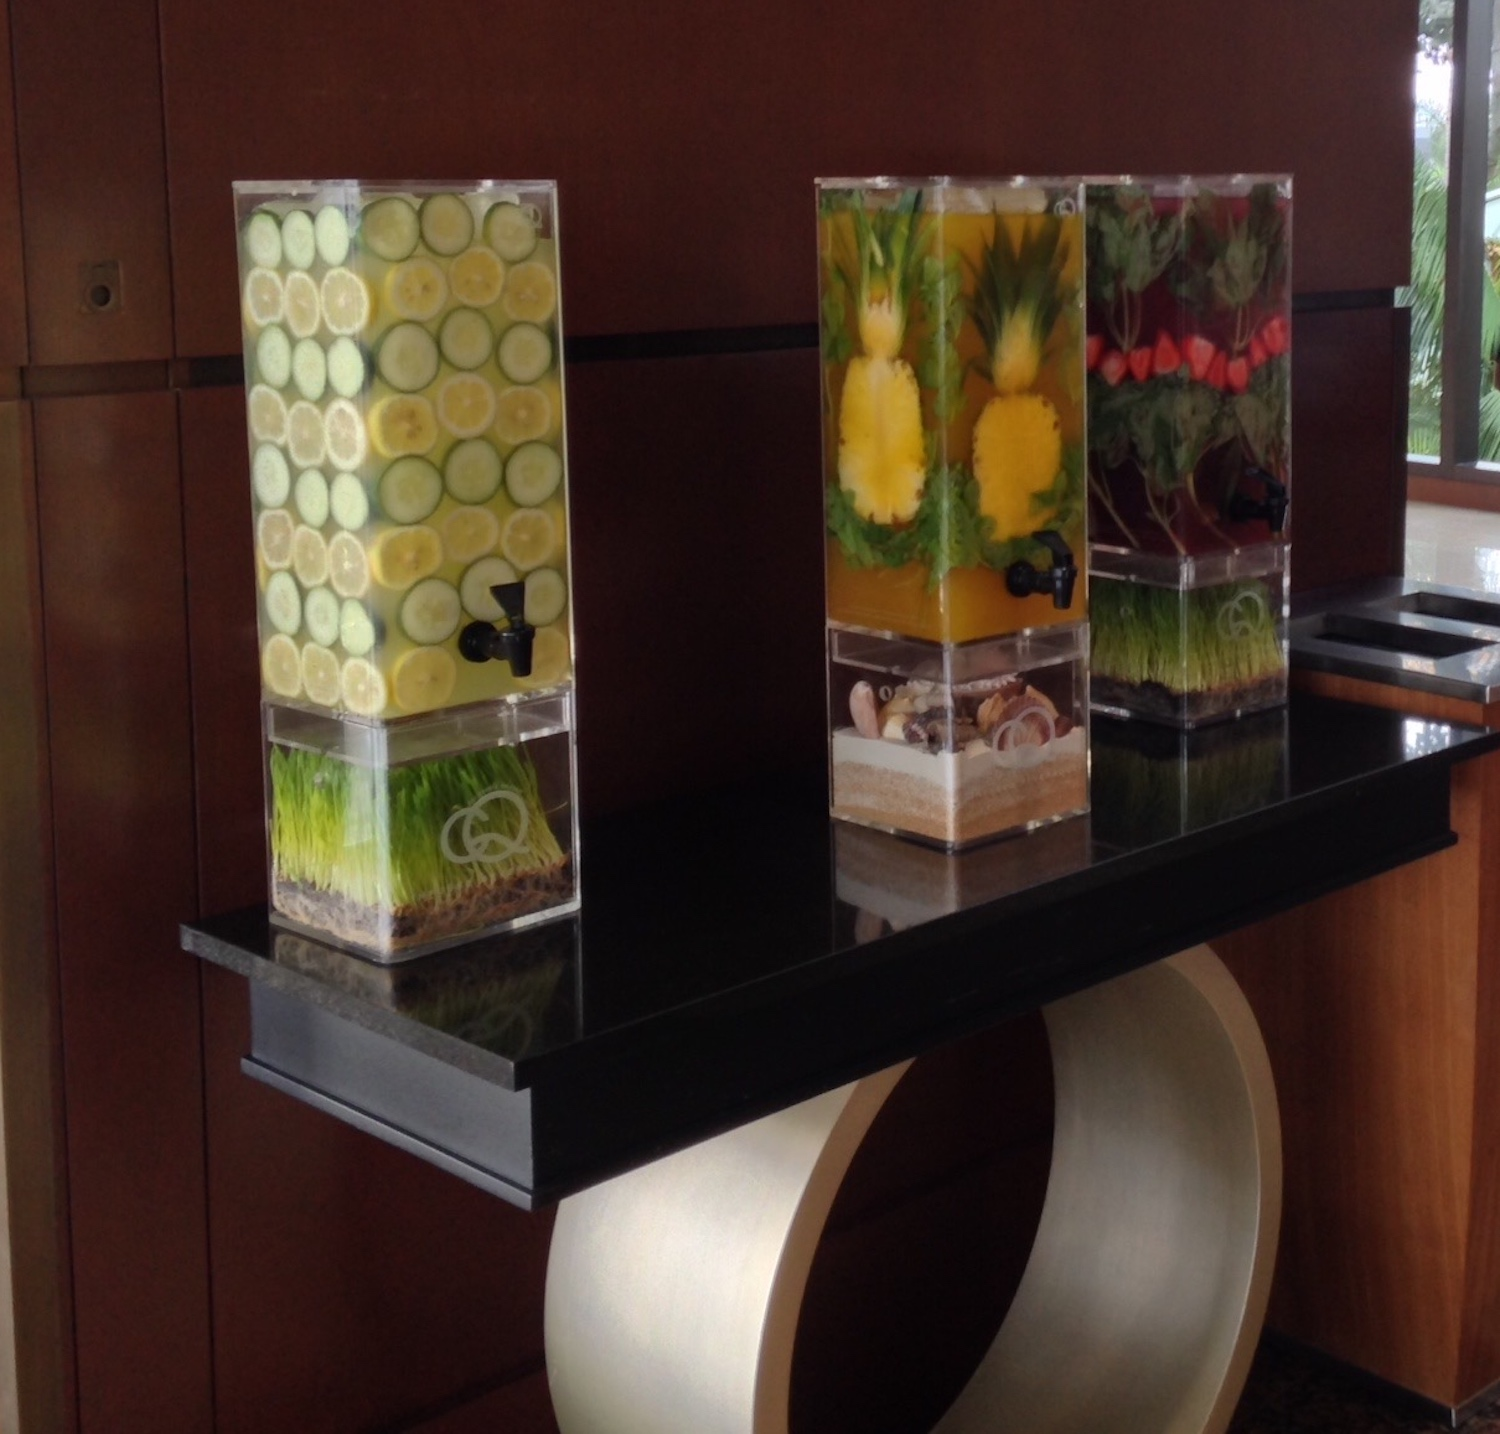 CQ Pineapple Mint Mango and Lemon Cucumber - San Diego Marriott Elite Check-In